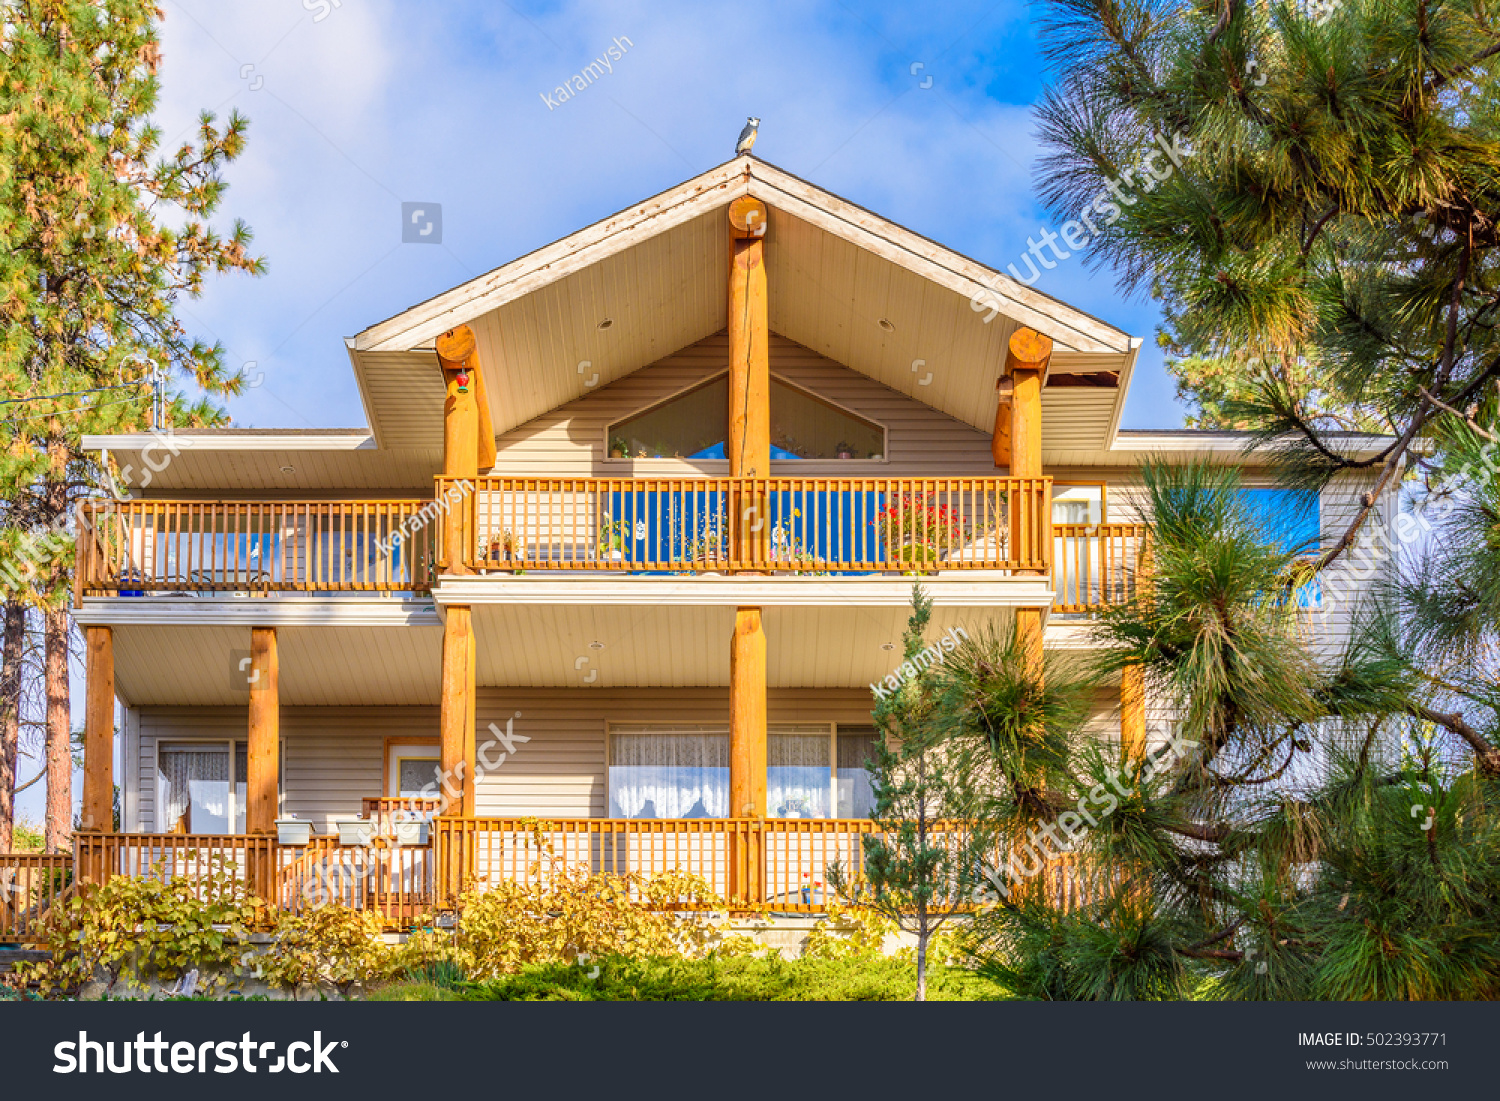 top house nice window balcony veranda stock photo 502393771 shutterstock. Black Bedroom Furniture Sets. Home Design Ideas